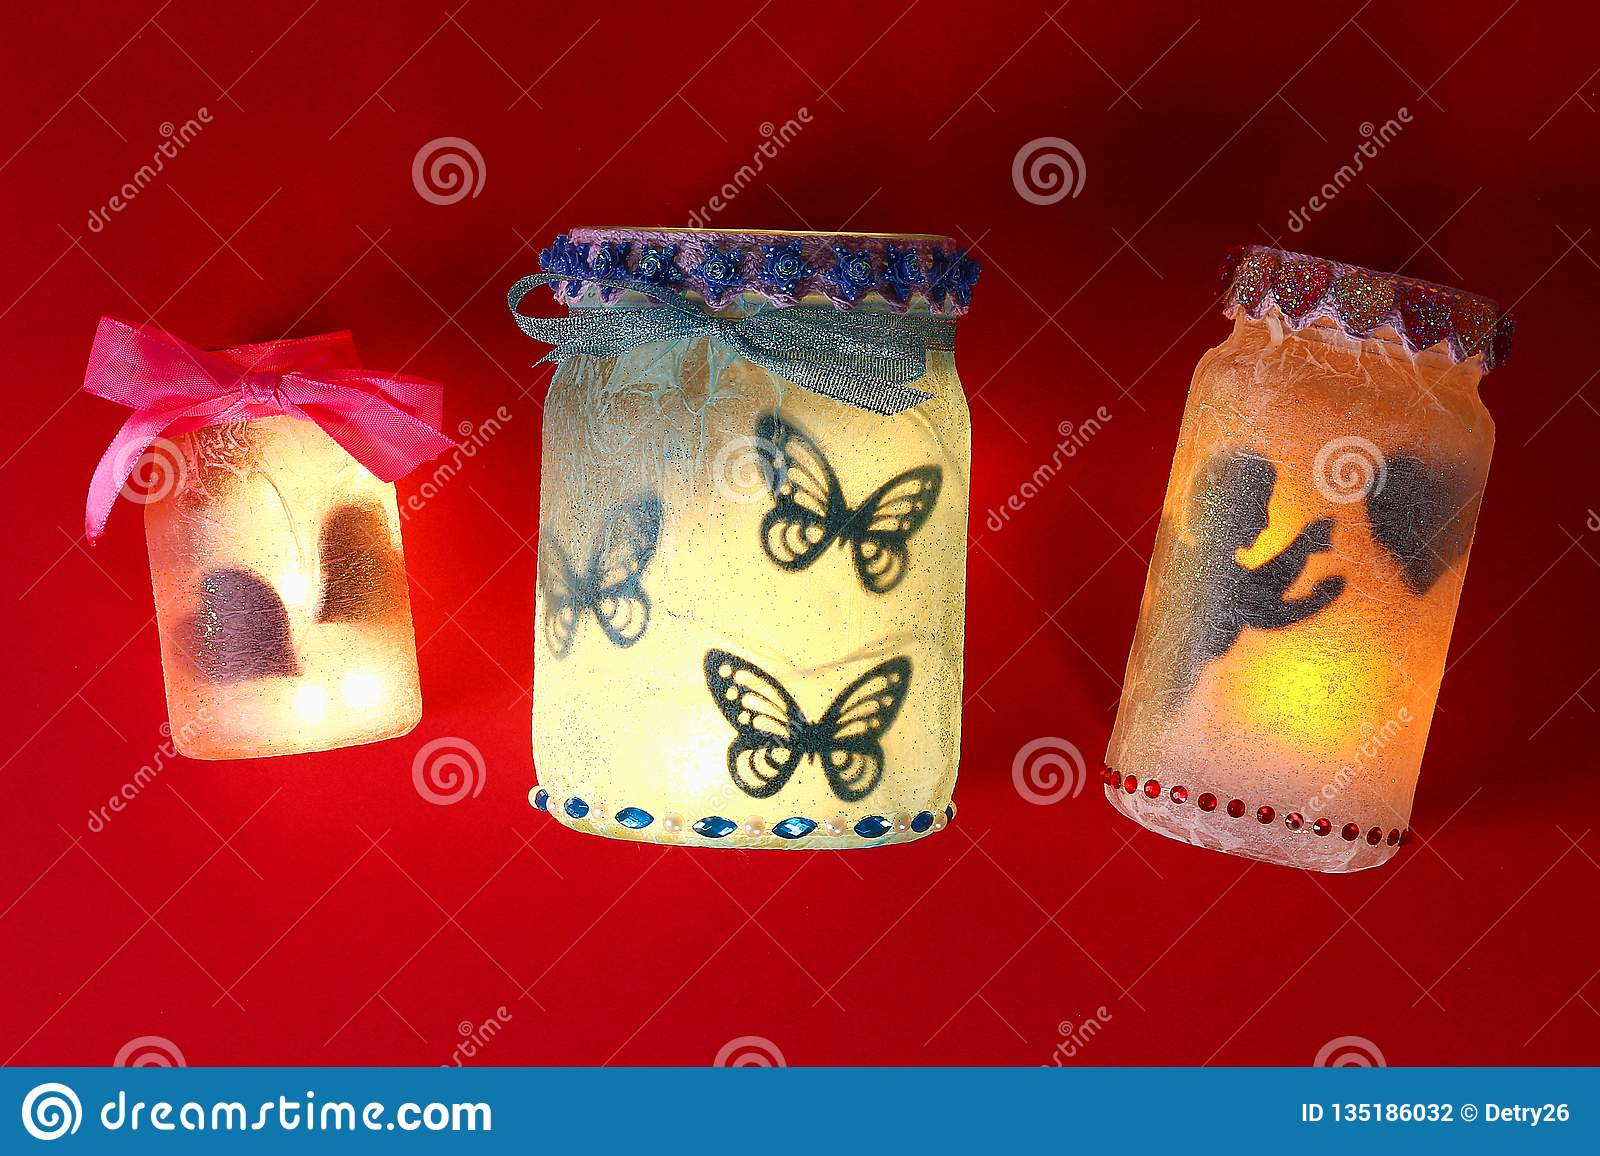 Diy Fairy Jar On Red Background Gift Ideas Decor February 14 St Valentines Day Love Handmade Stock Photo Image Of February Lamp 135186032